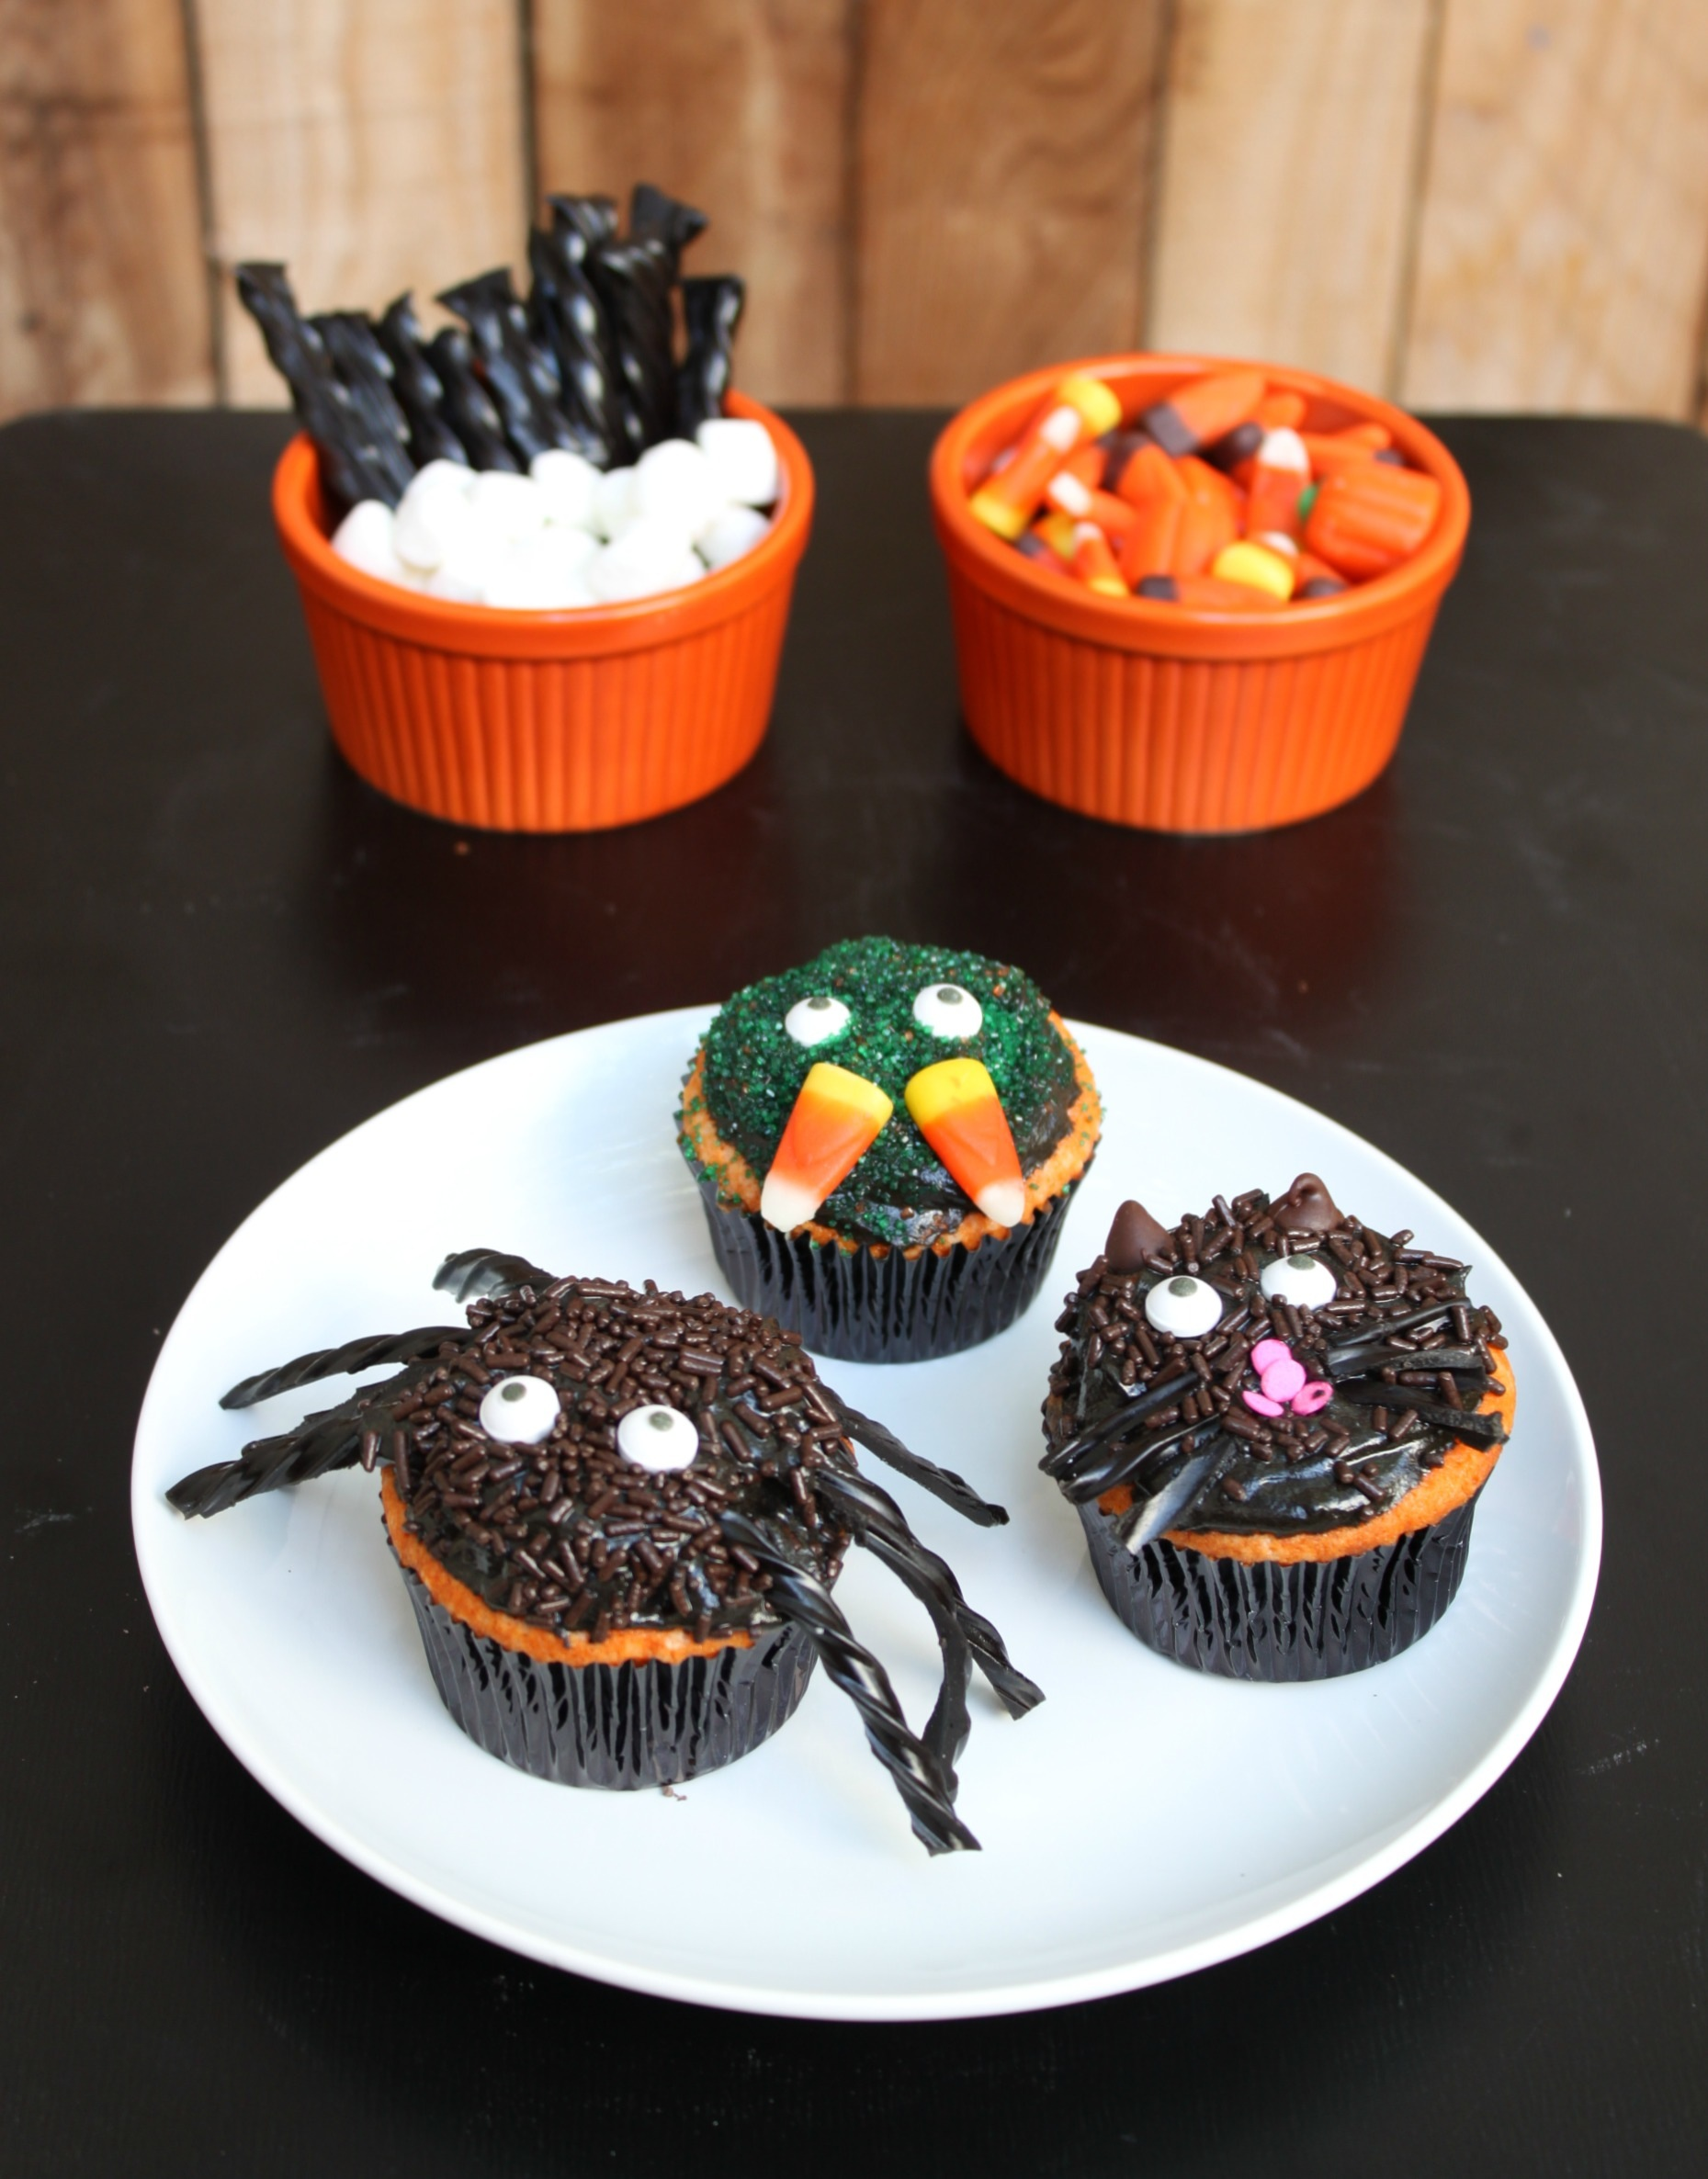 Creepy halloween cupcakes 52 kitchen adventures - Halloween decorations for cupcakes ...